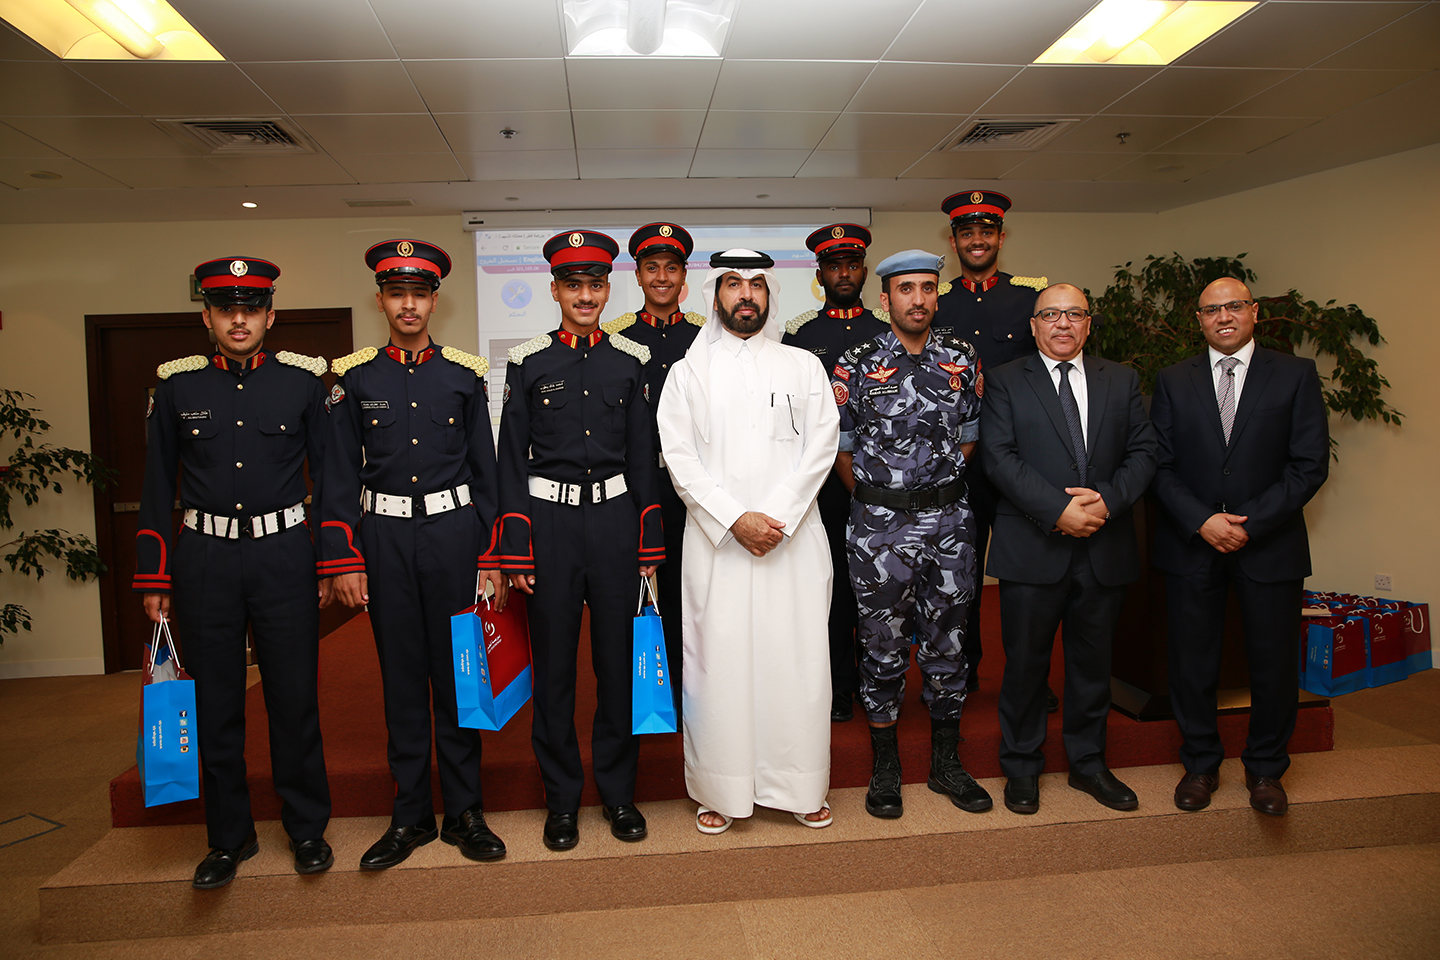 Group Photo of Military College Visit